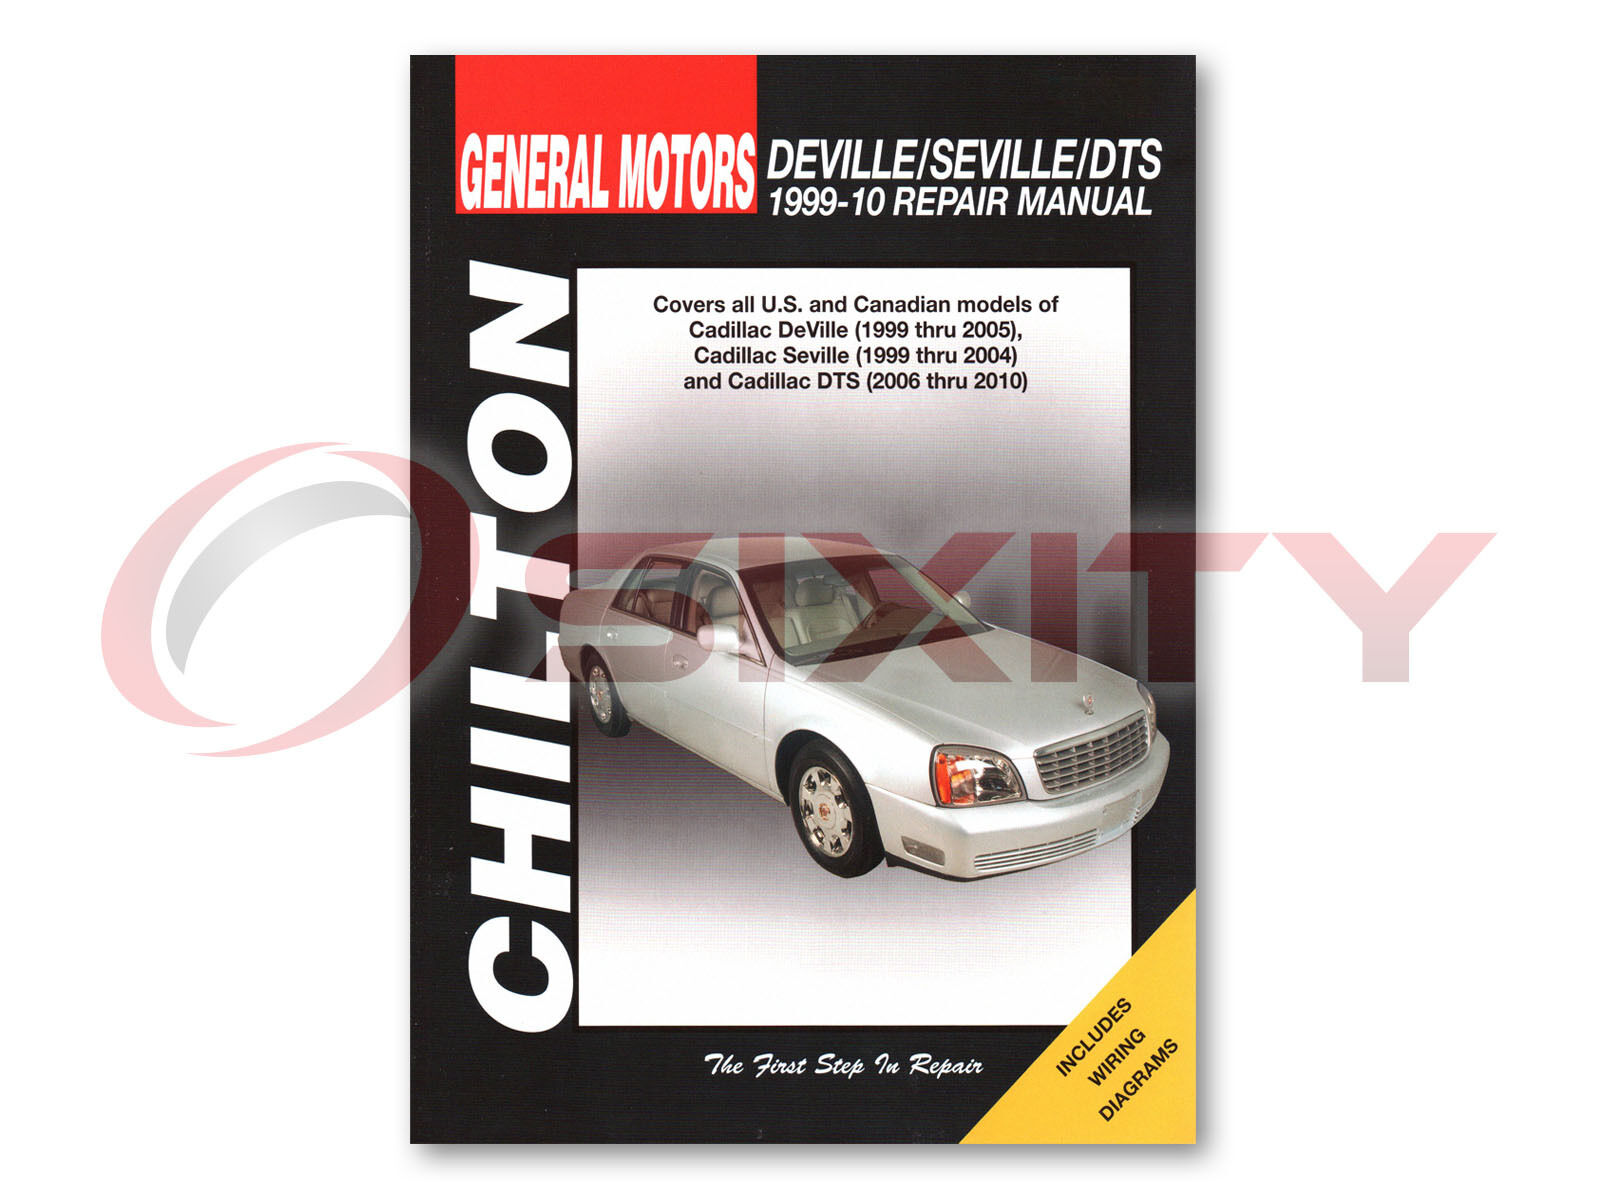 Cadillac DeVille Chilton Repair Manual Base d'Elegance DHS Concours DTS Shop  jp 1 of 1 See More